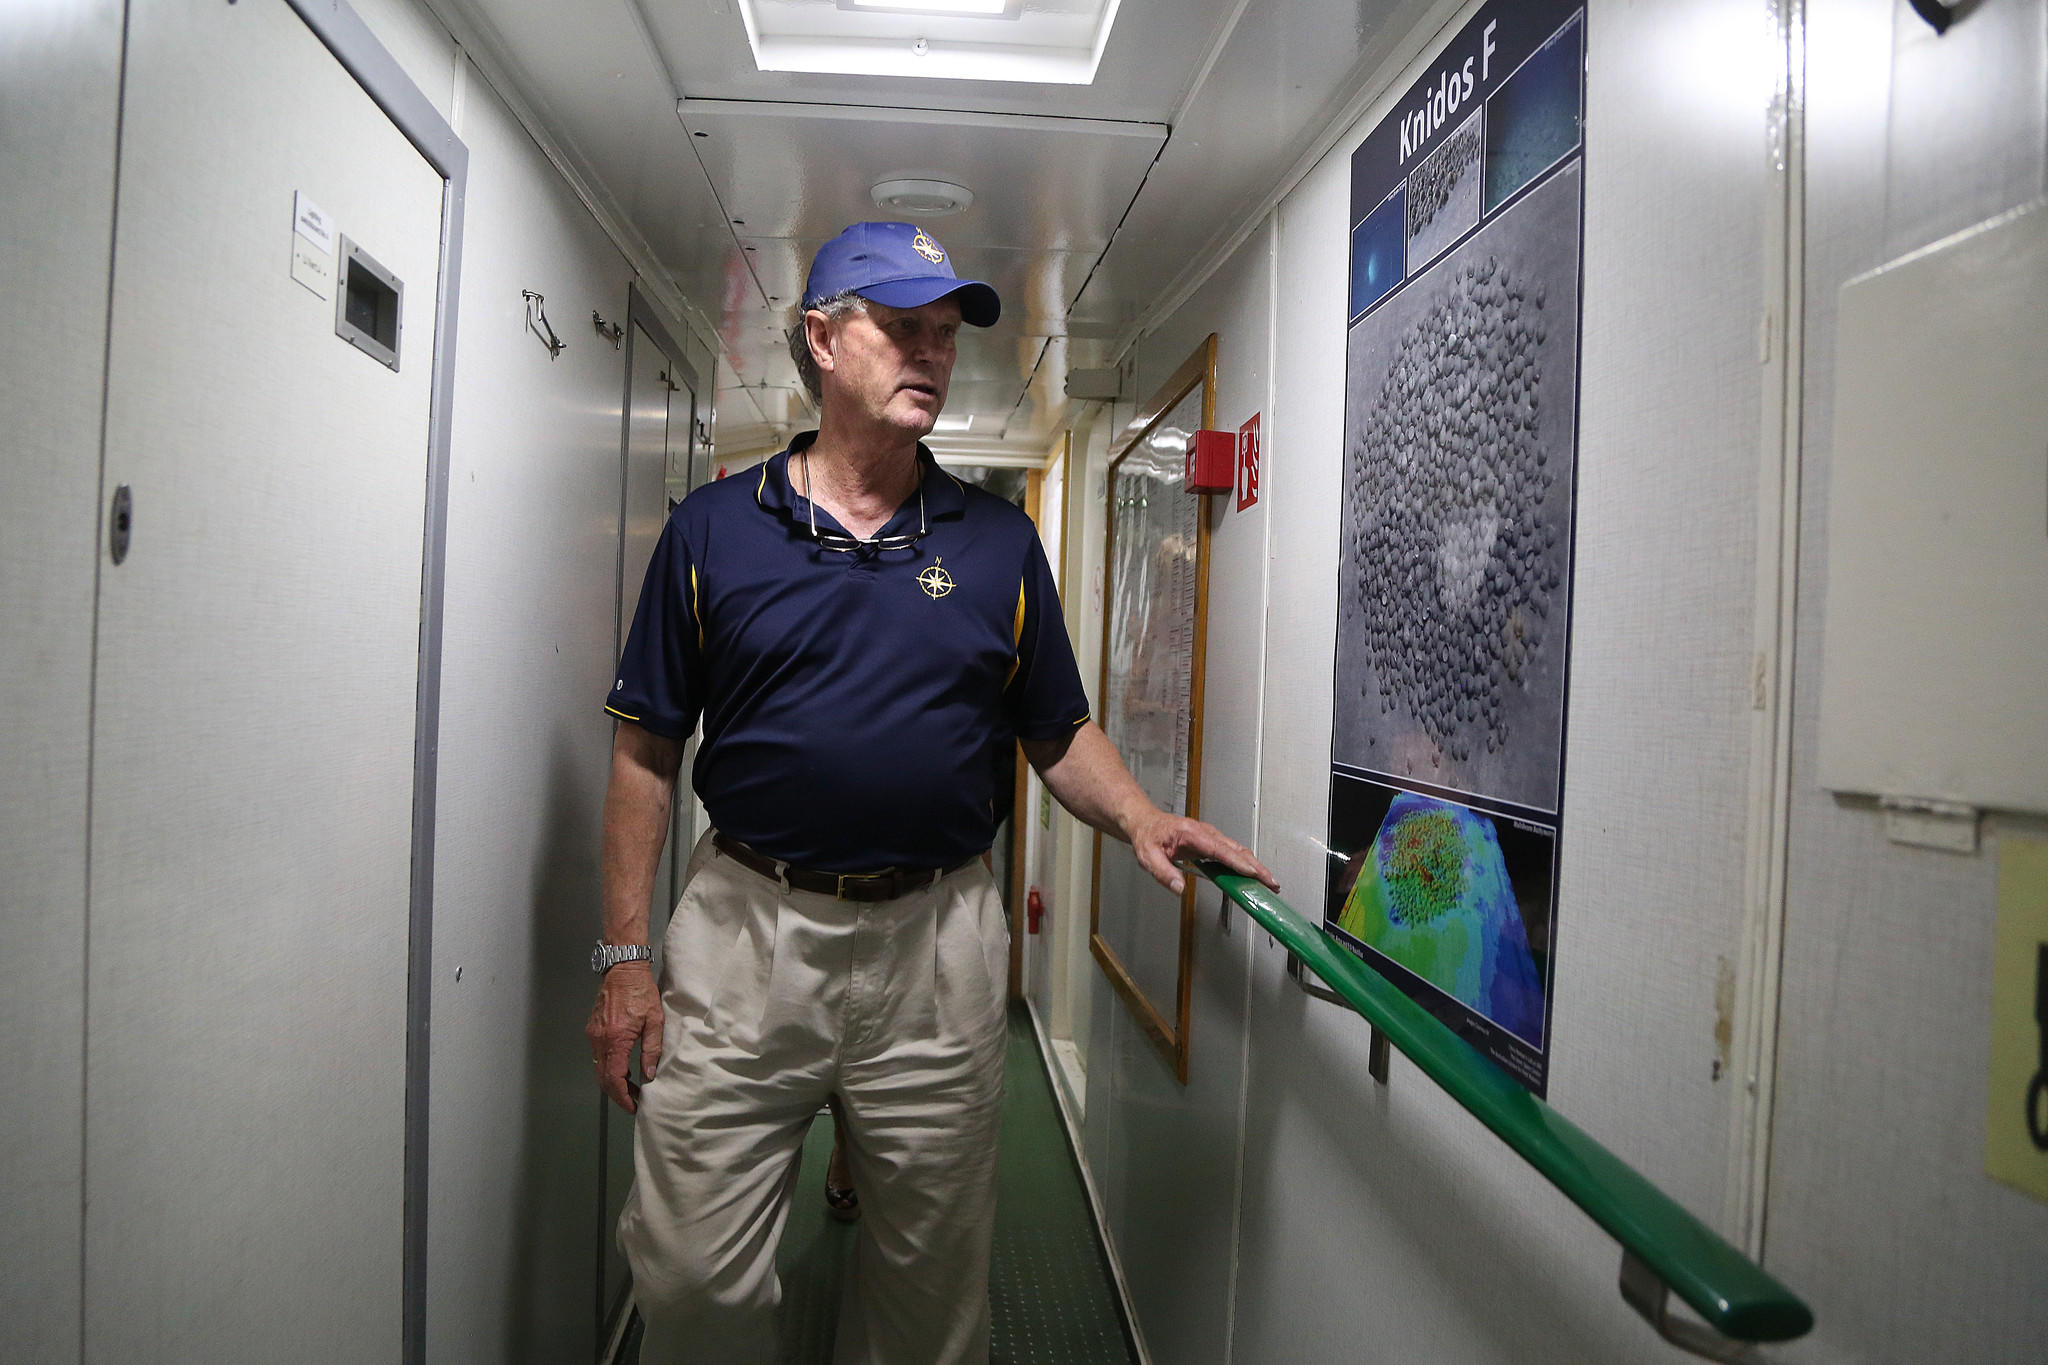 Deep-sea archaeologist Robert Ballard aboard the Nautilus, a 200-foot research vessel that is about to embark on a 4-month exploration of the Caribbean.